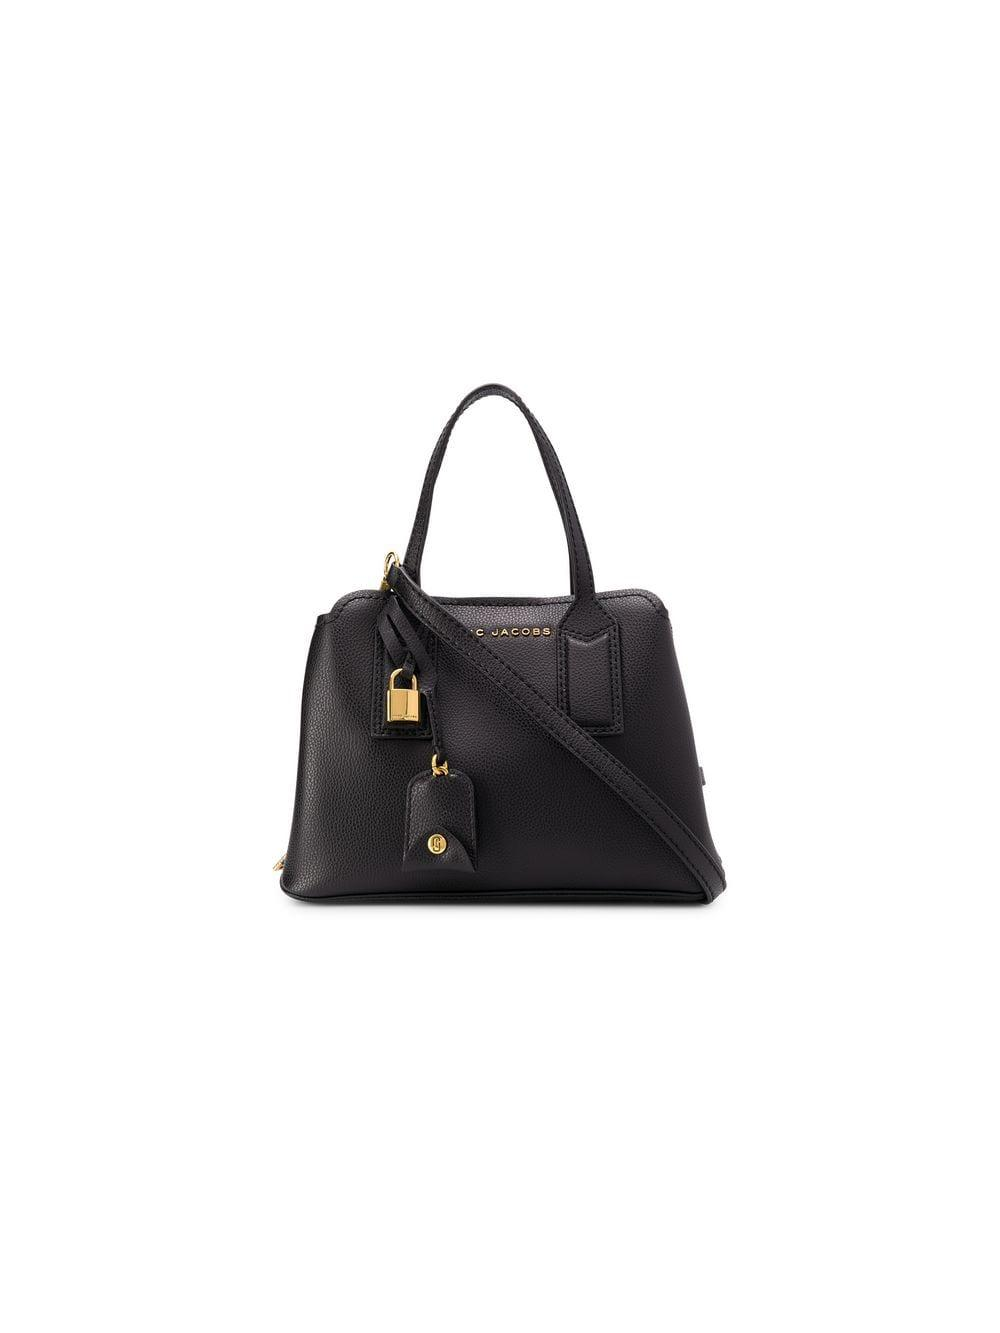 4591050f4cff Lyst - Marc Jacobs The Editor Tote Bag in Black